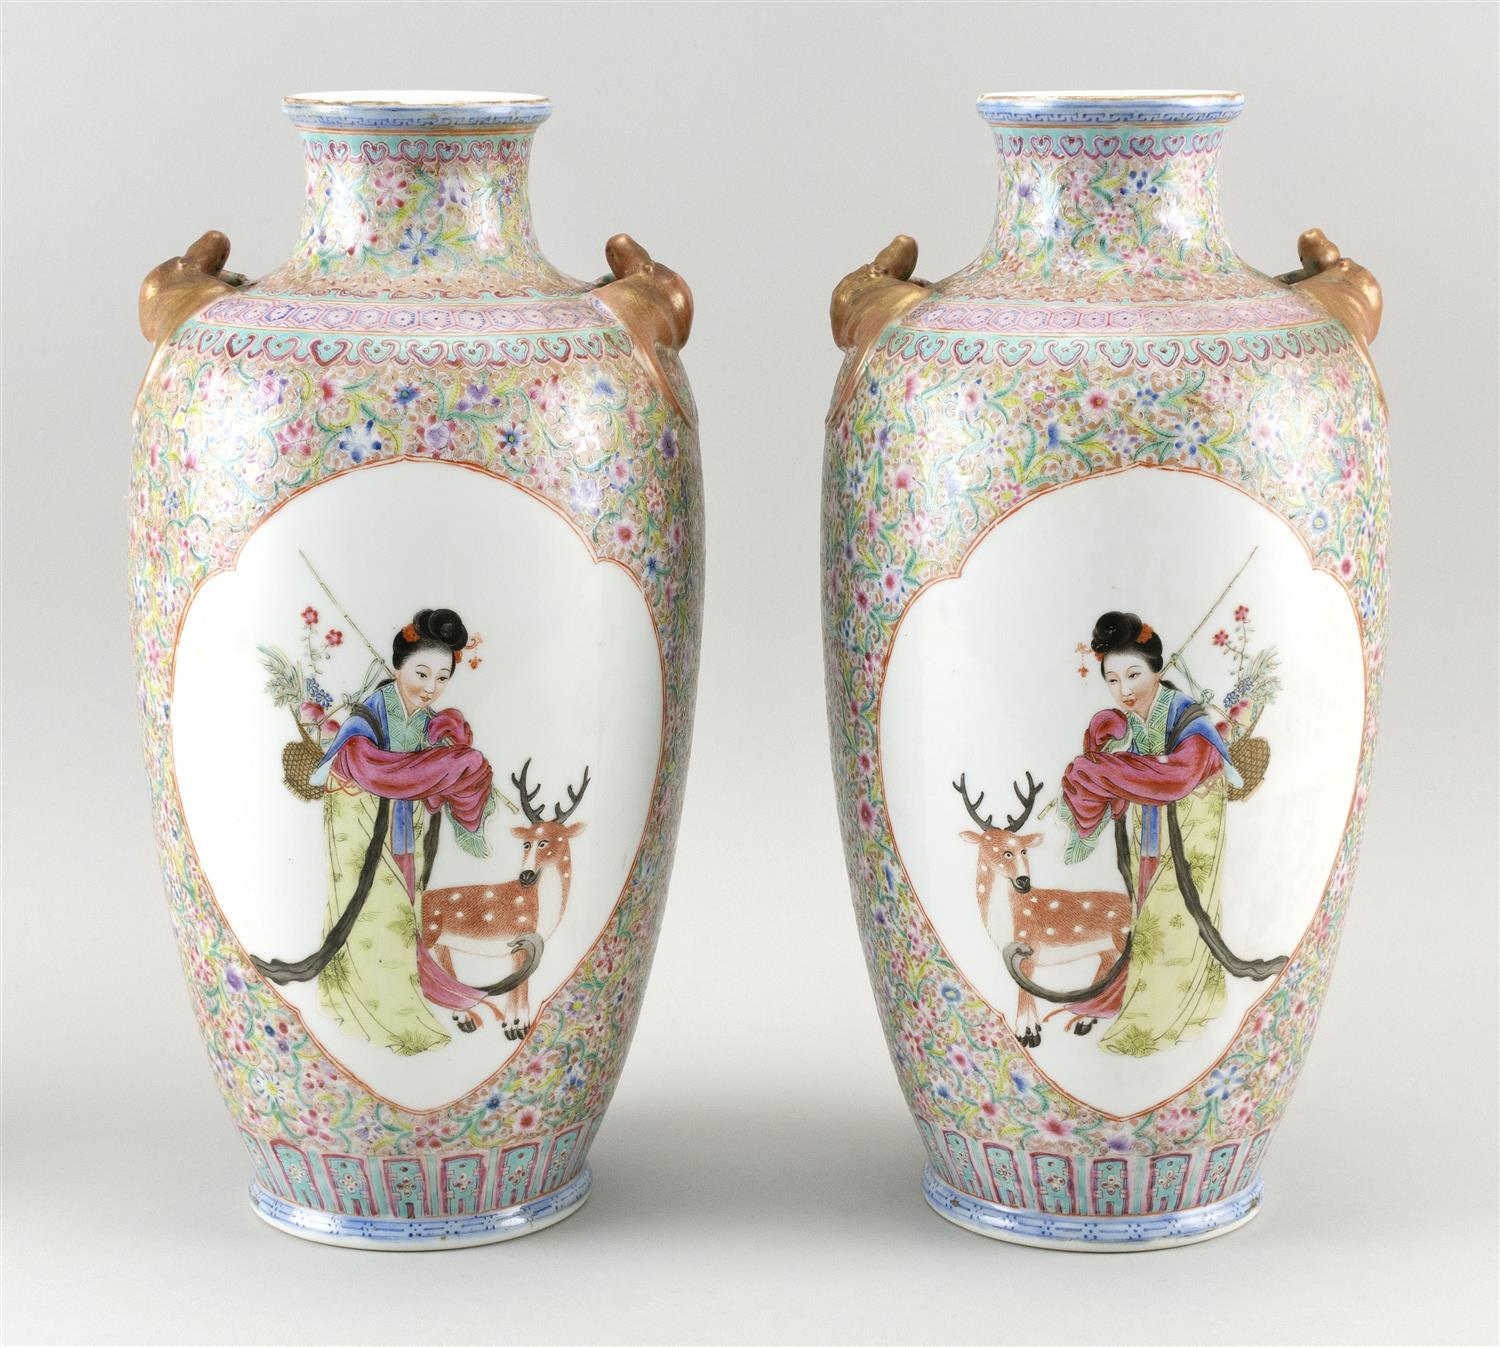 PAIR OF CHINESE FAMILLE ROSE PORCELAIN VASES In rouleau form, with gilt bat-form handles at shoulder and decoration of figural reser...